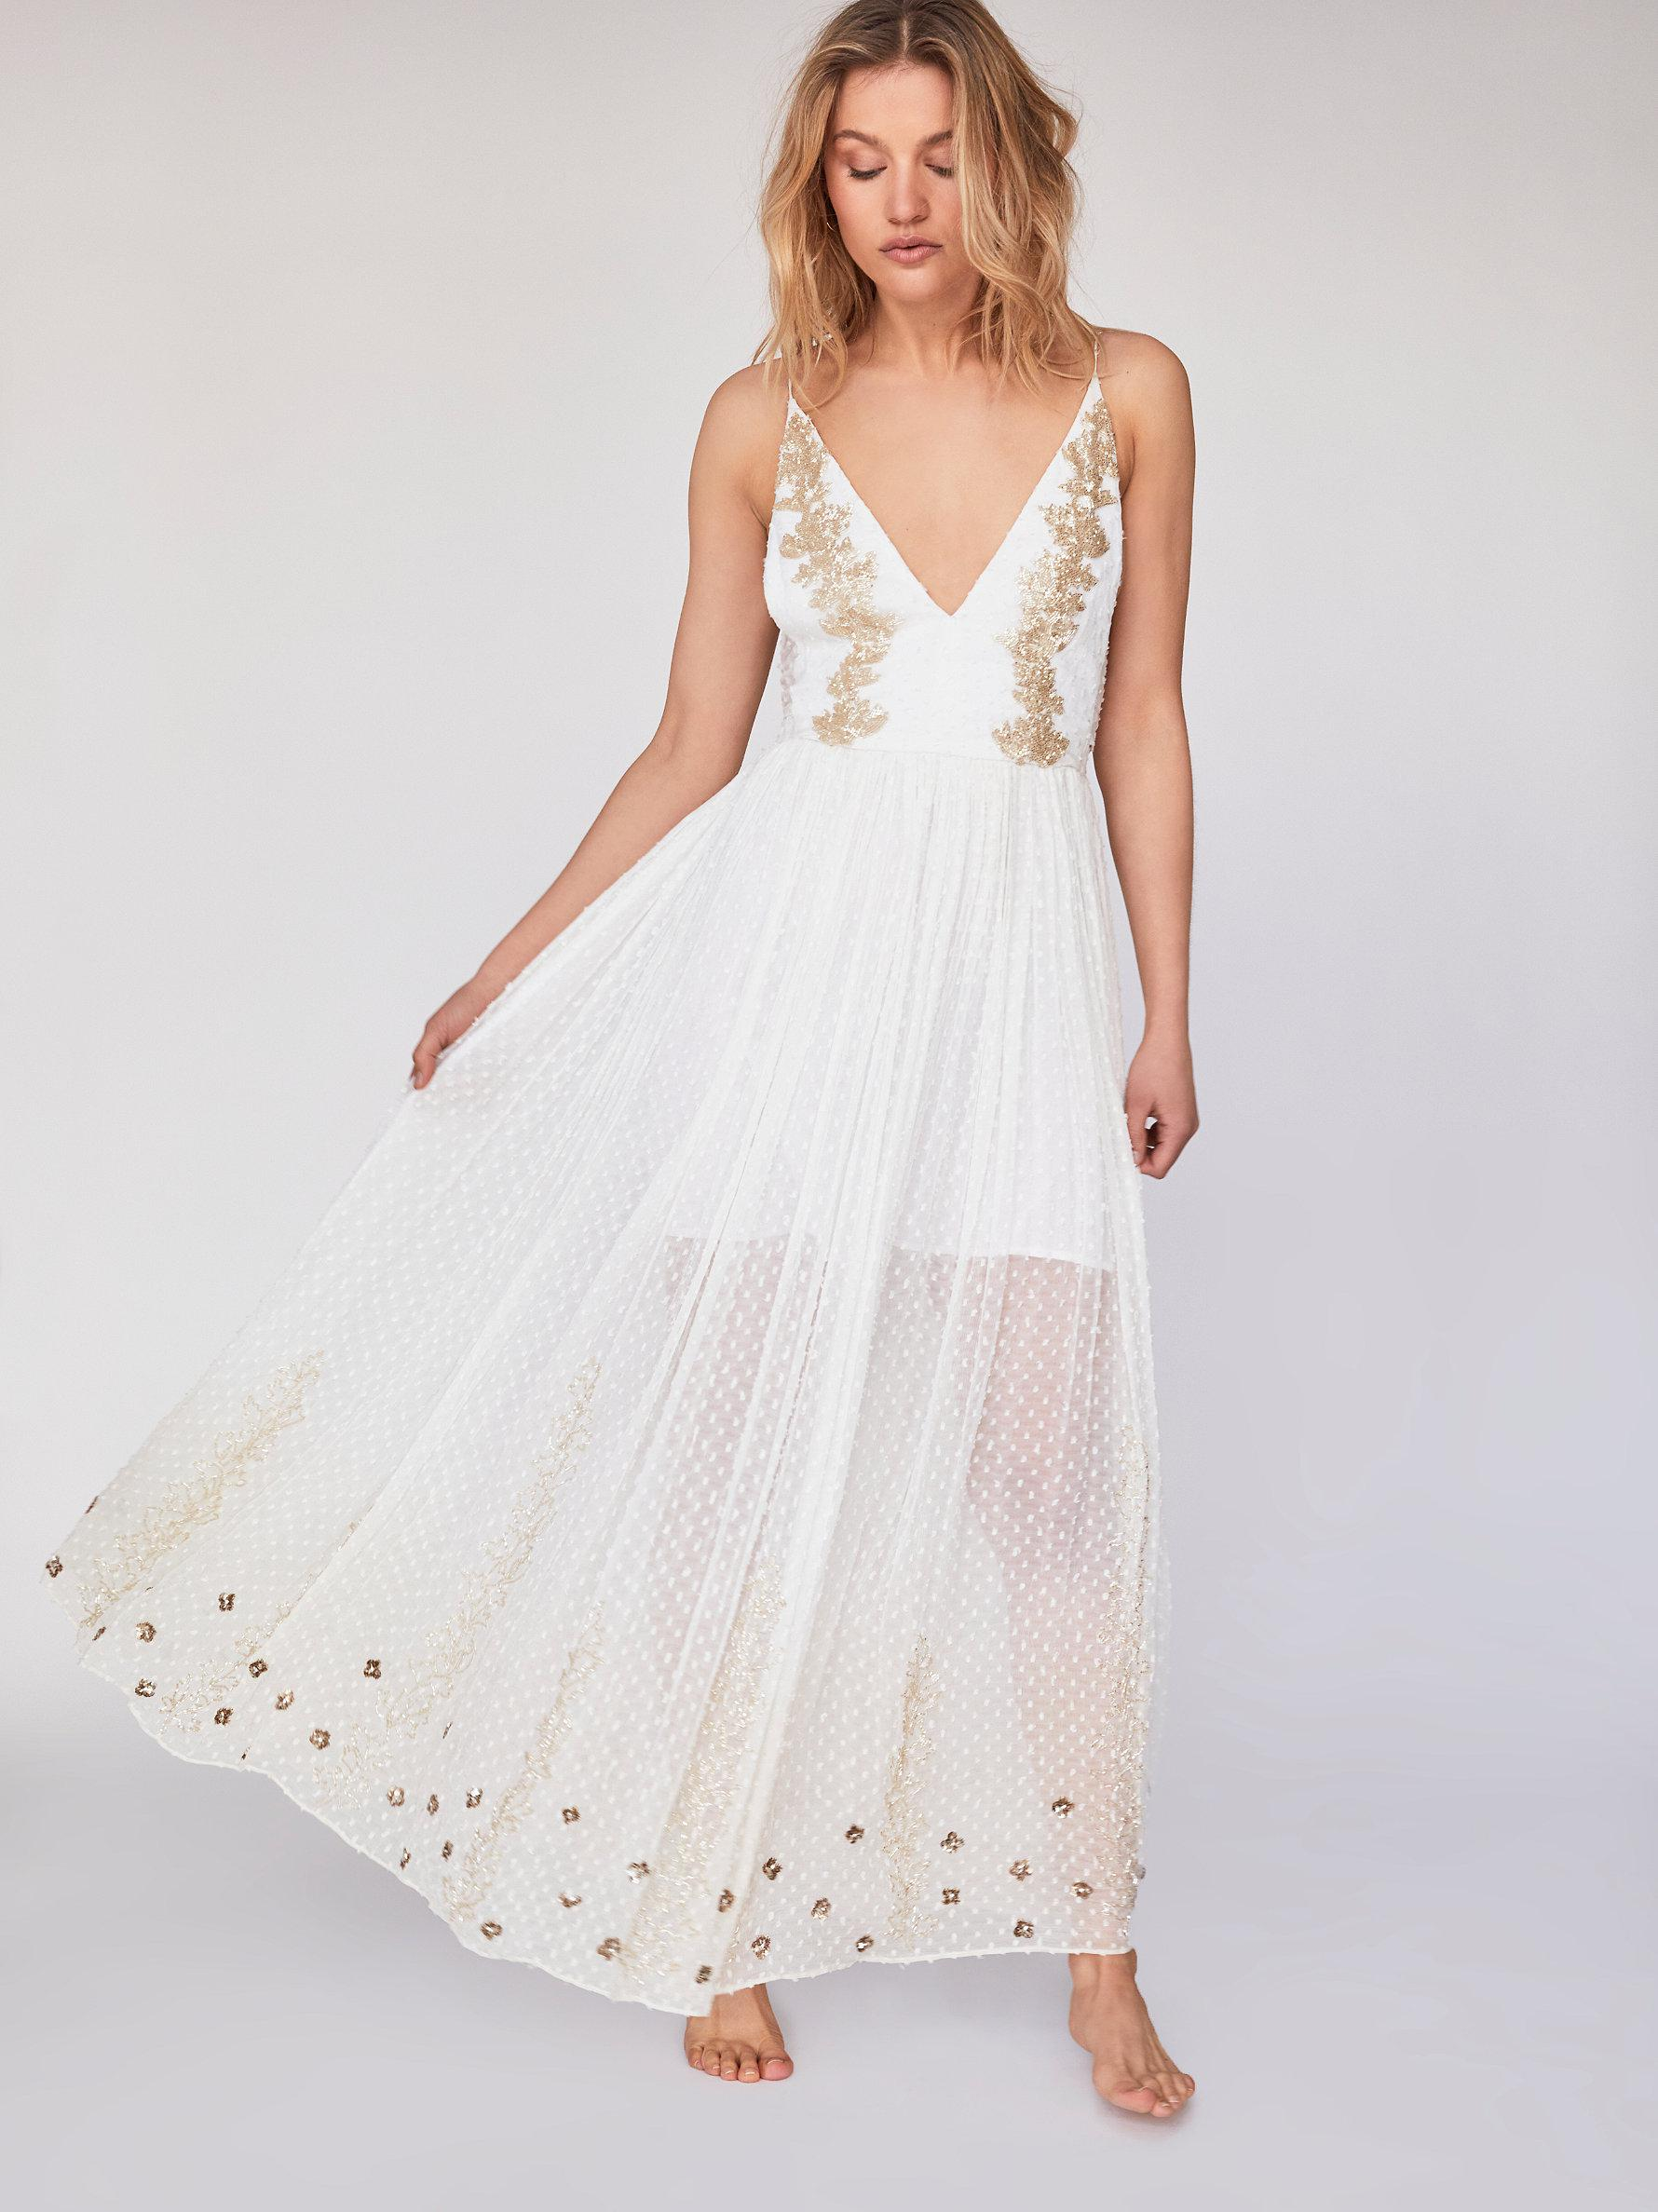 5c4efaacf4 Free People So Embellished Maxi Dress in White - Lyst